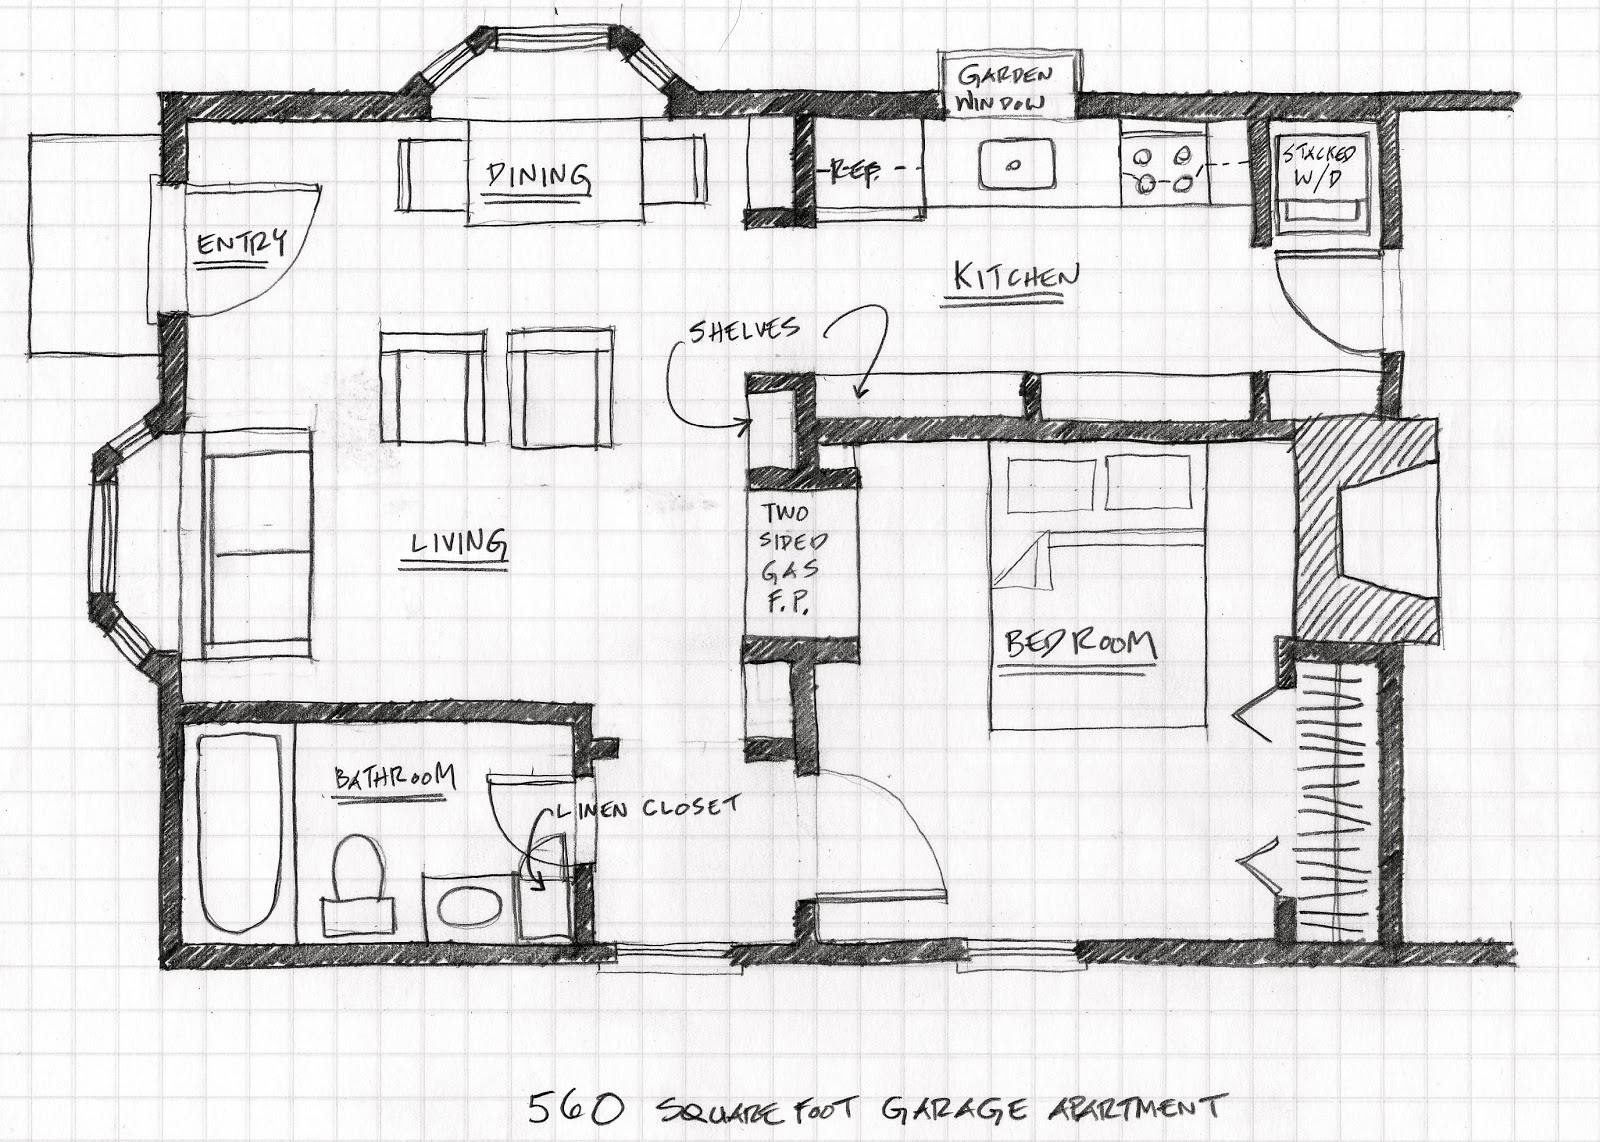 Small Scale Homes: Floor Plans for Garage to Apartment ...